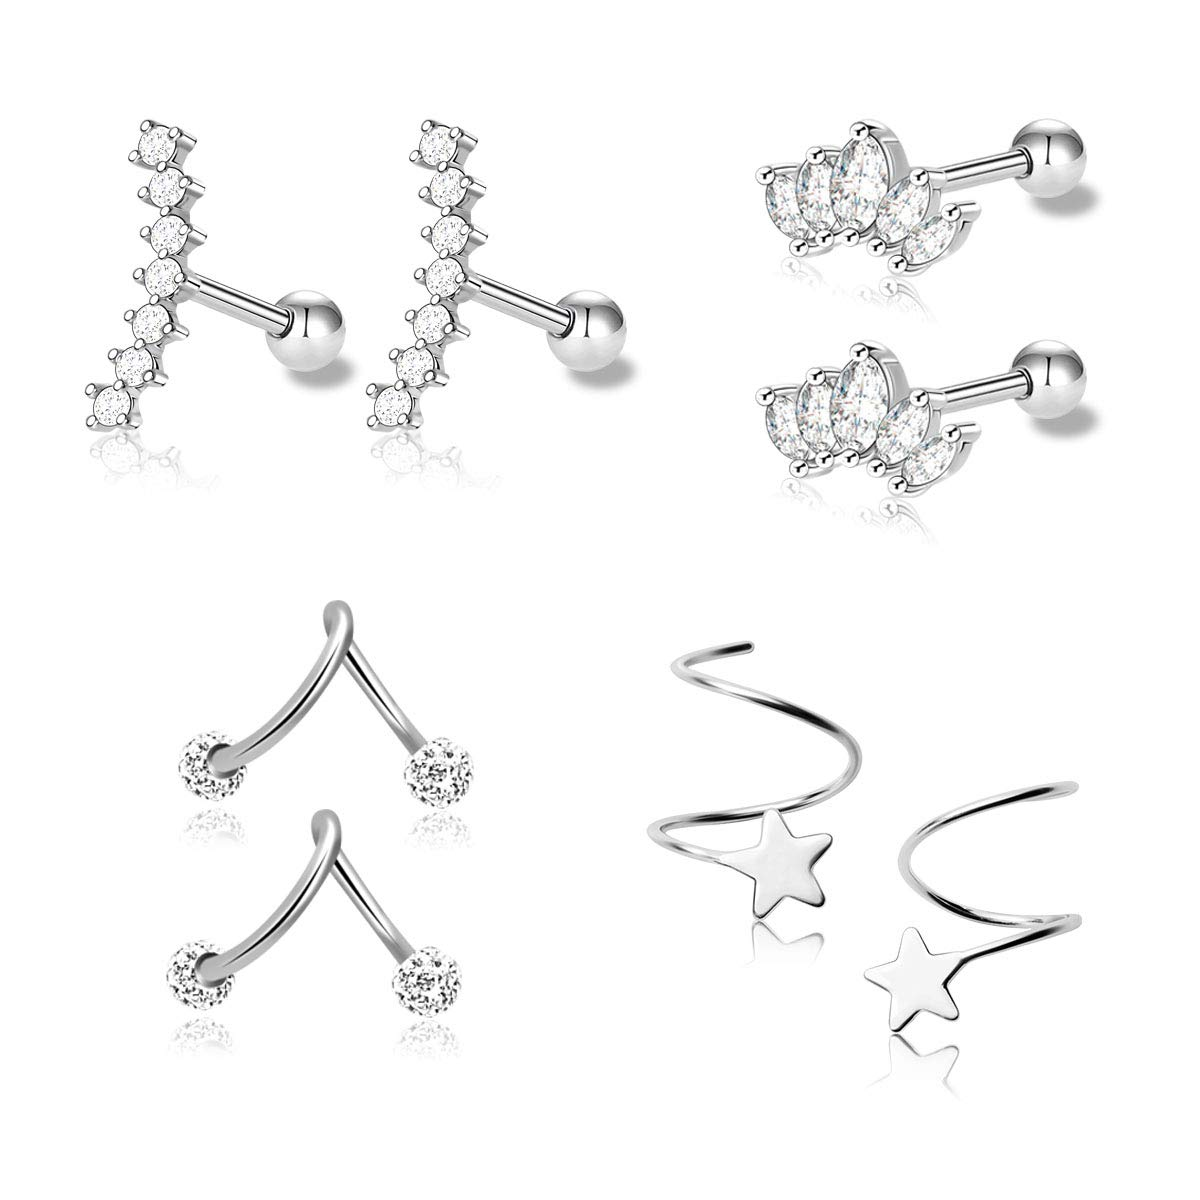 1-4 Pairs Stainless Steel Silver Ear Cartilage Earrings for Women Girls Tragus Helix Earring Cute Conch Flat Back Piercing Jewelry 16G (Style A)